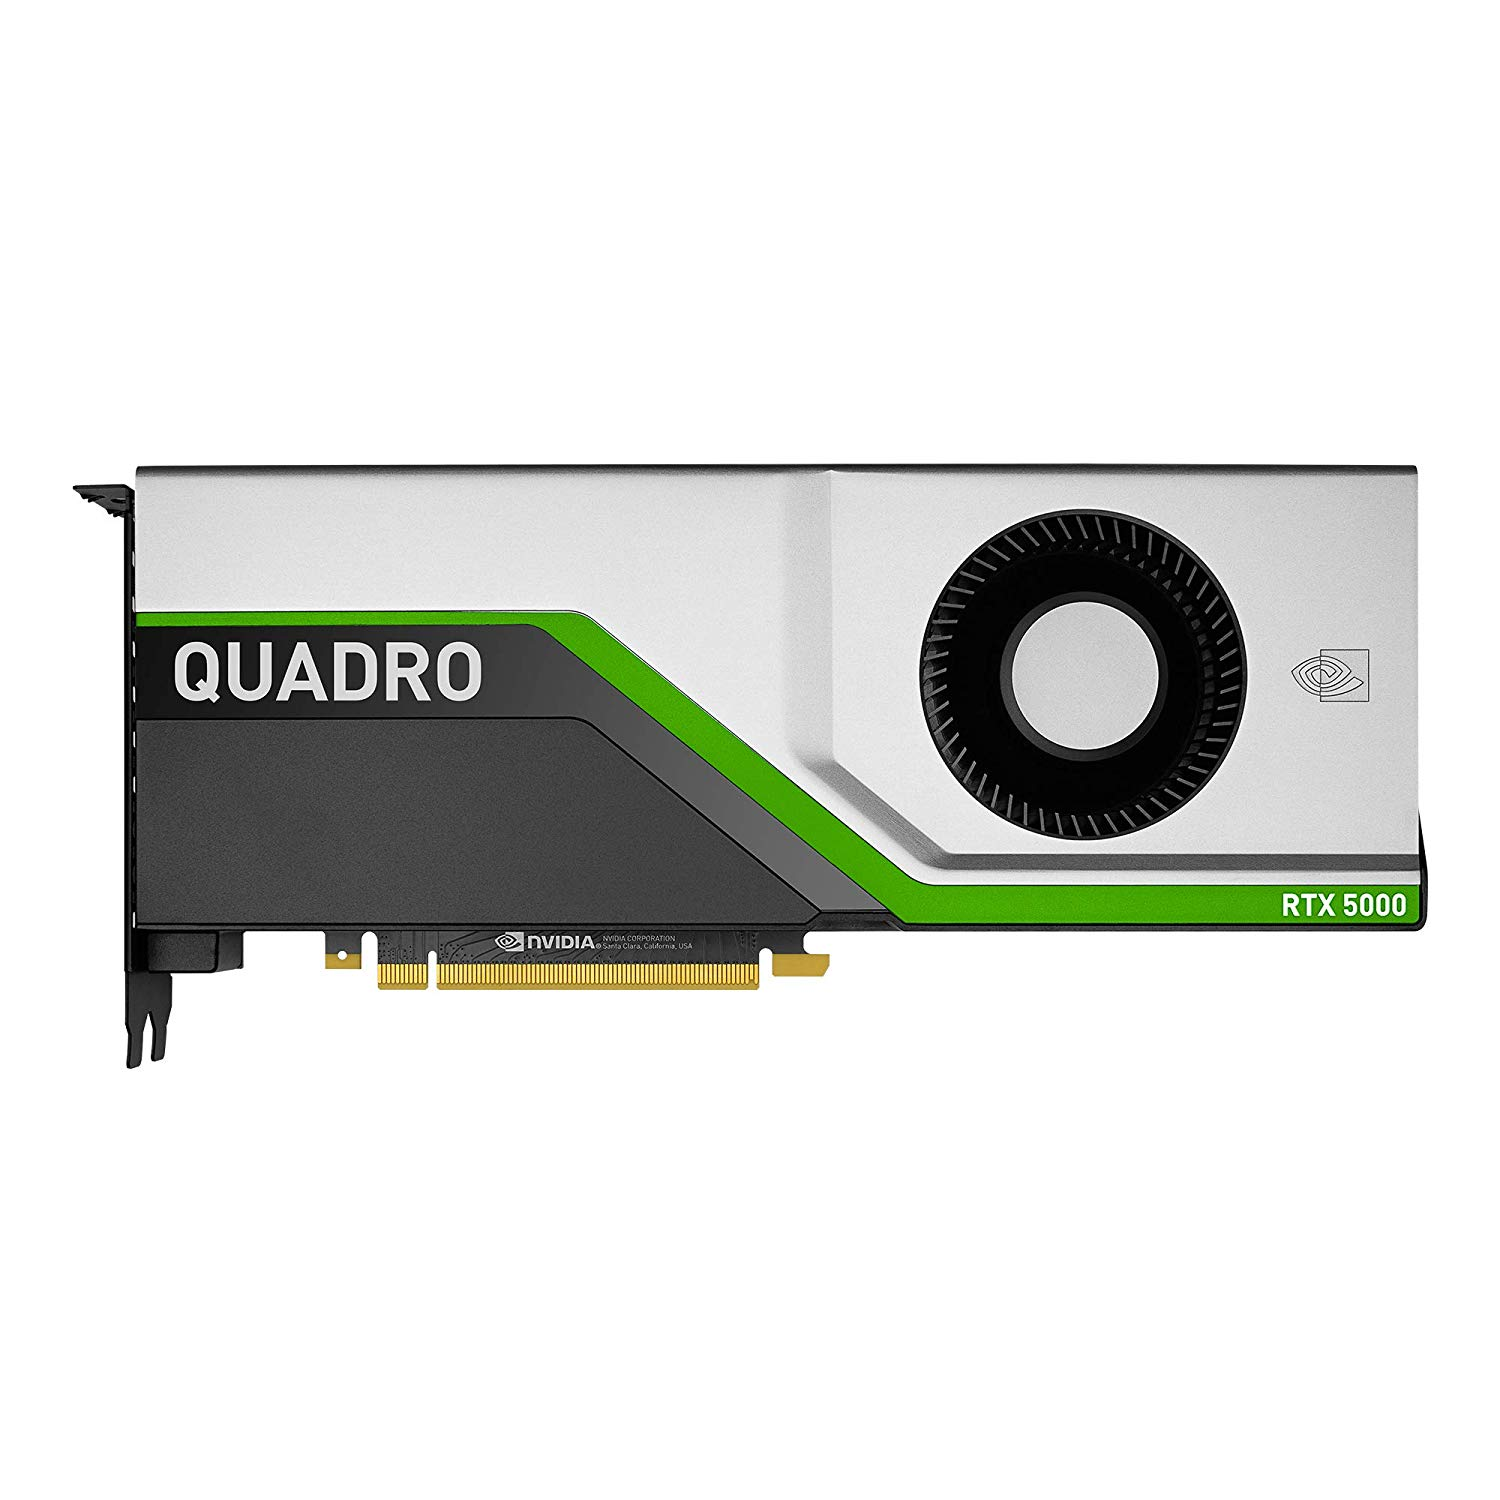 Internal Computer Expansion PNY Quadro RTX 5000 16GB DDR6 Graphics Card